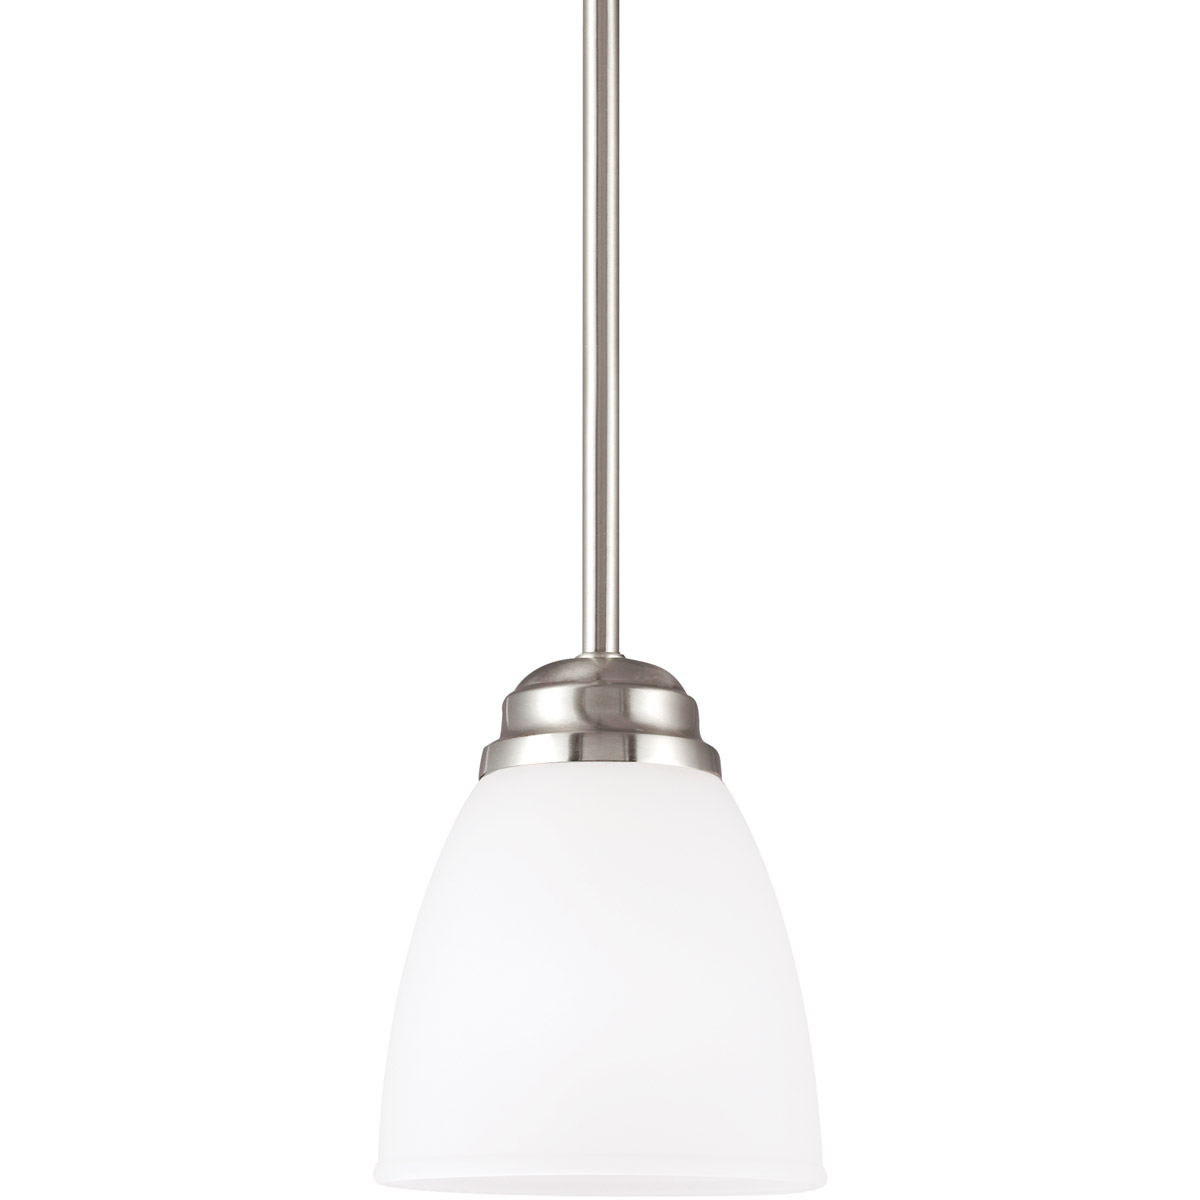 Sea Gull Northbrook 1 Light Mini Pendant in Brushed Nickel 6112401BLE-962